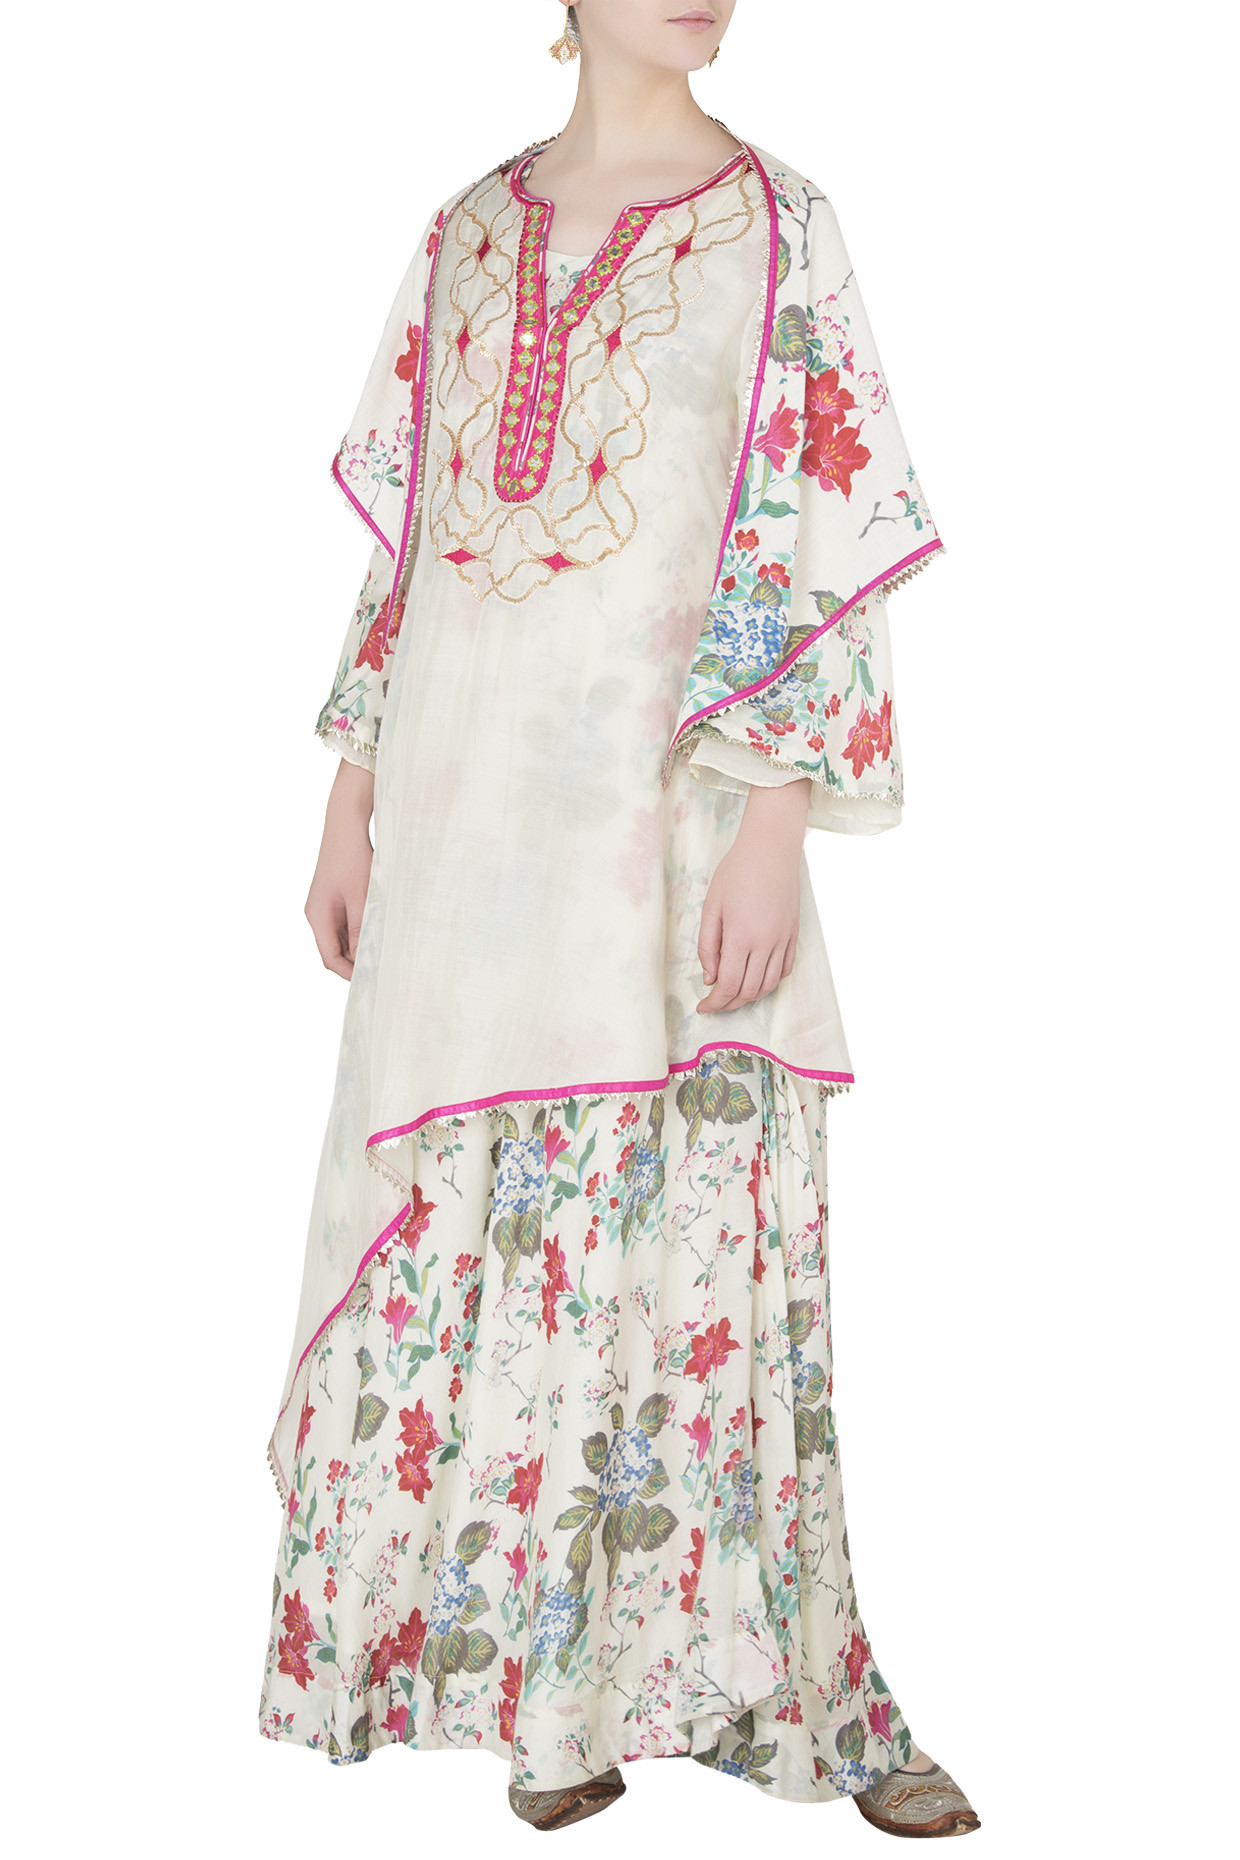 White Aysmmetrical Embroidered and Printed Kurta with Triangle Stole by Gopi Vaid